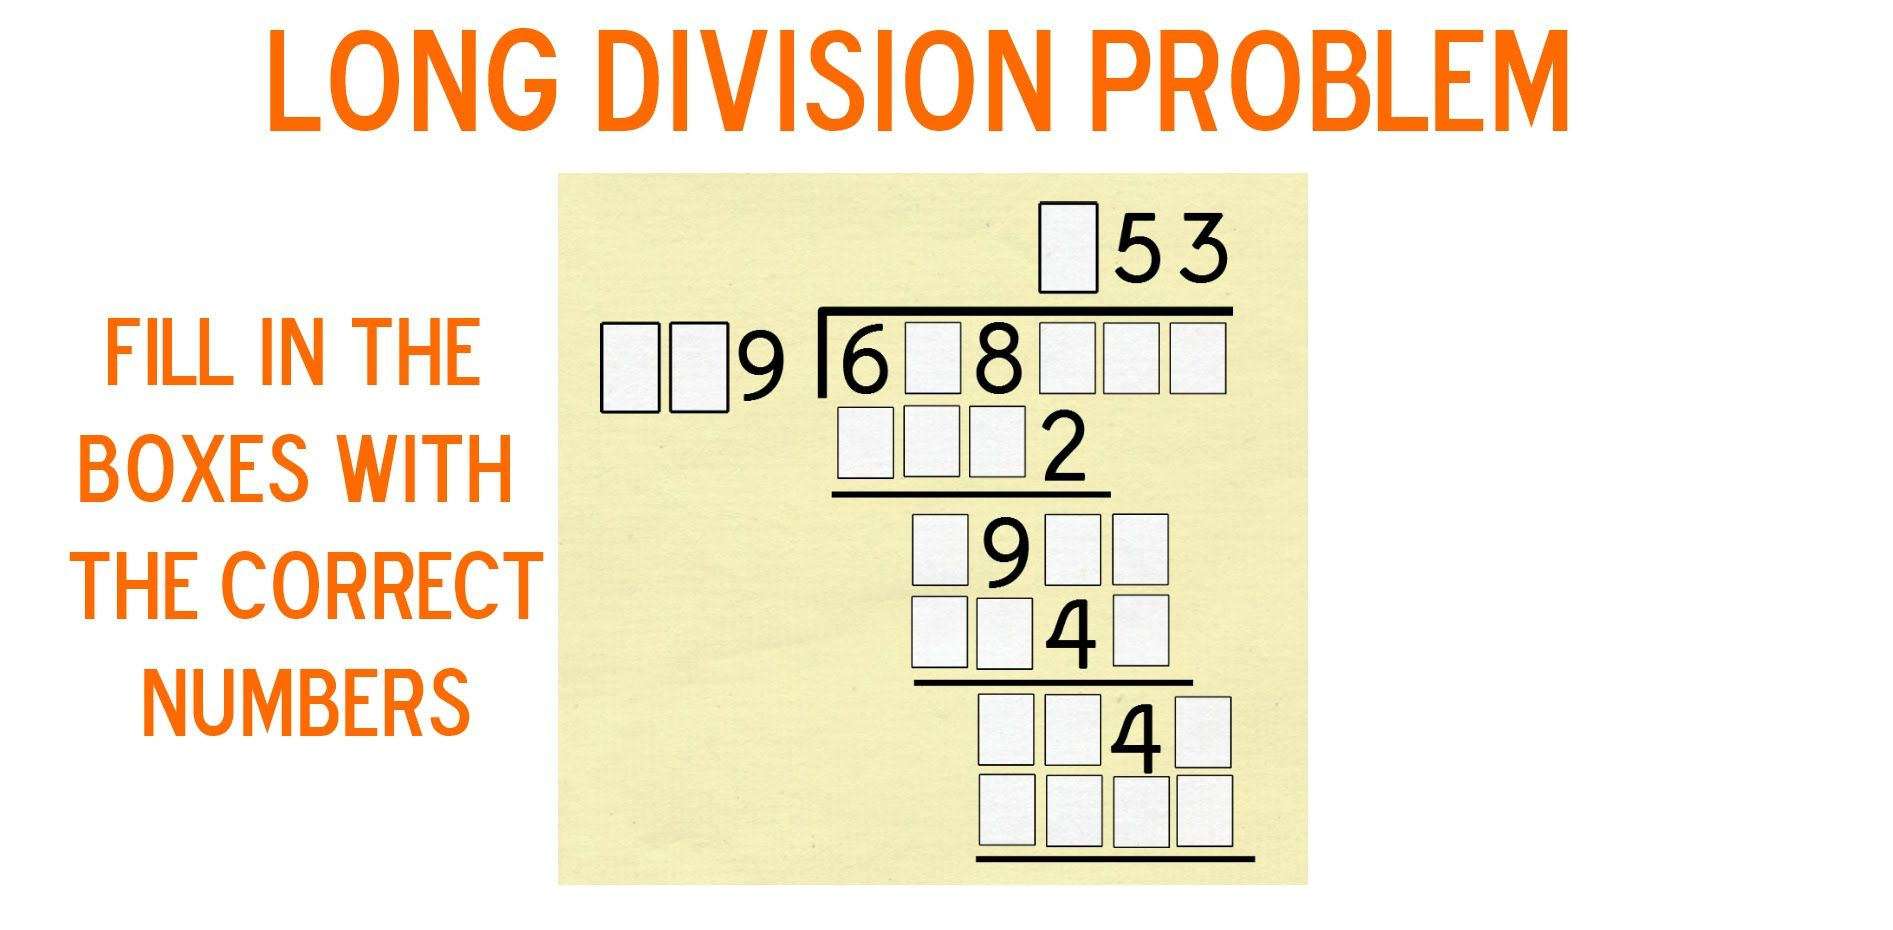 worksheet Long Division Video a long division puzzler video httpswww youtube comwatchv youtube